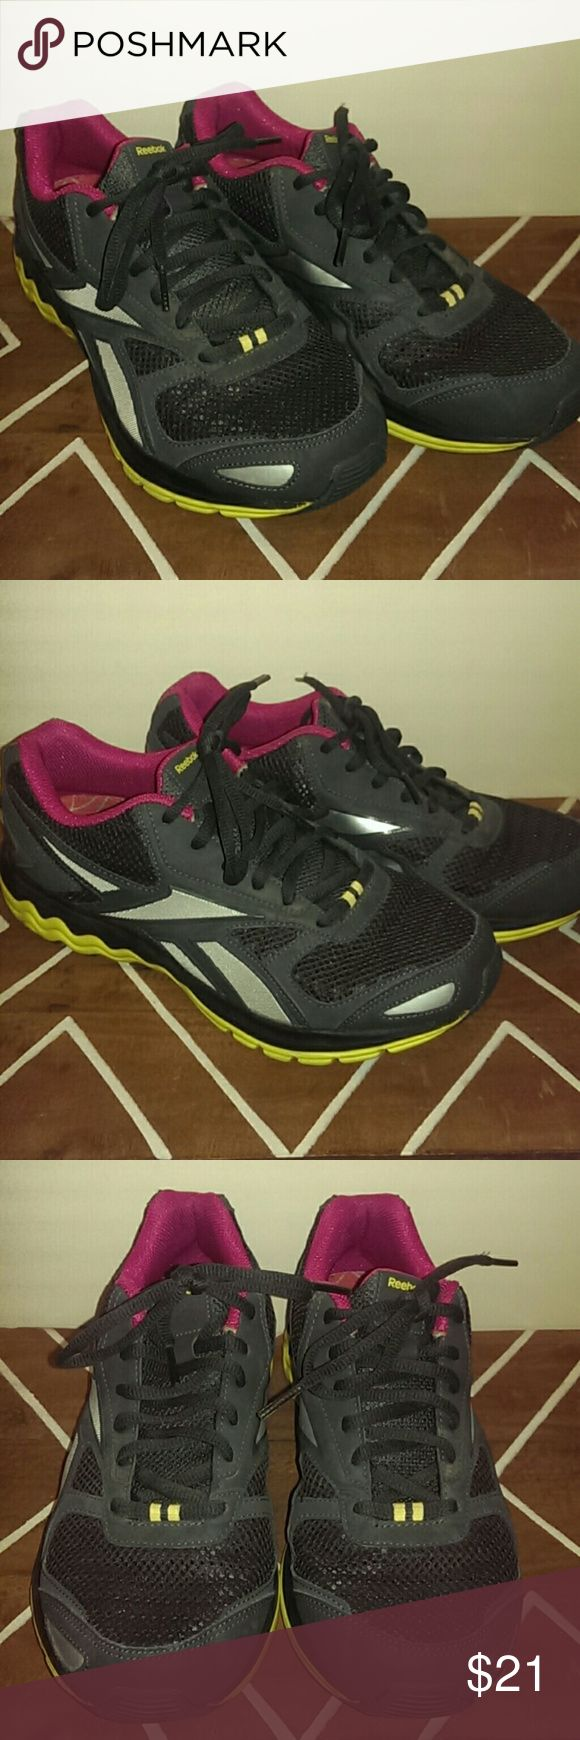 Reebok Running Shoes Reebok running/gym shoes. Lightweight and very comfortable. Factory insoles have been replaced with Dr. Scholl's Active Series insoles. Uppers are pretty clean as they were largely worn for treadmill running. Black with accents of silver, yellow, and pink. Offers welcome! Reebok Shoes Athletic Shoes